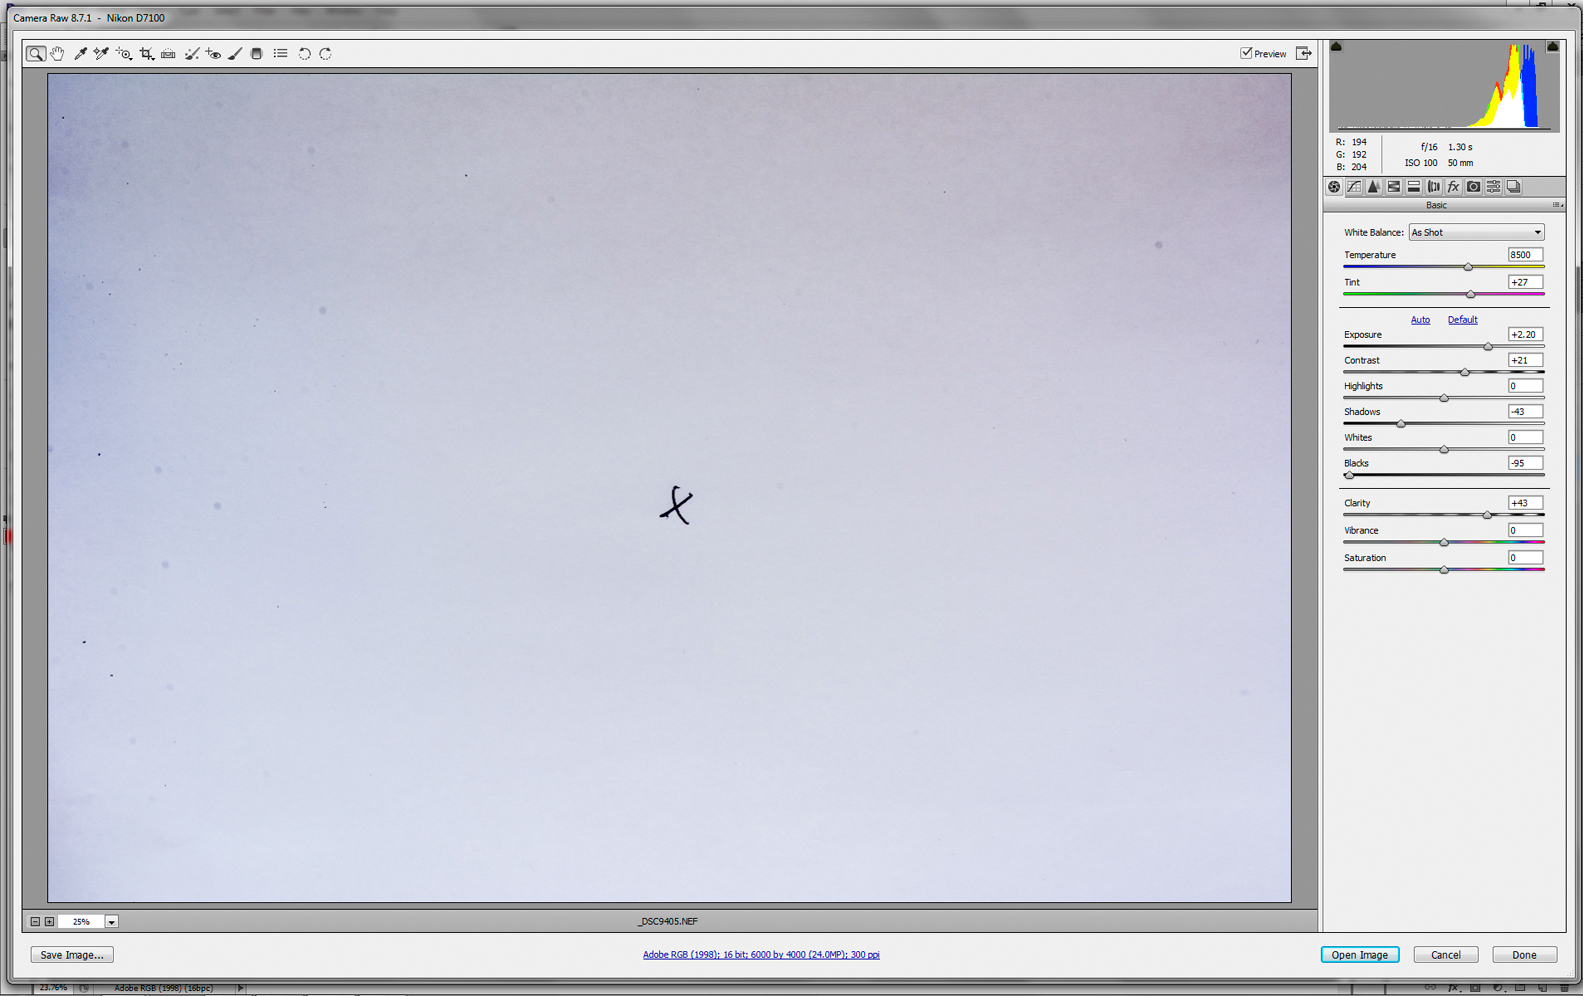 image of paper being opened in Photoshop to check for dirty sensor